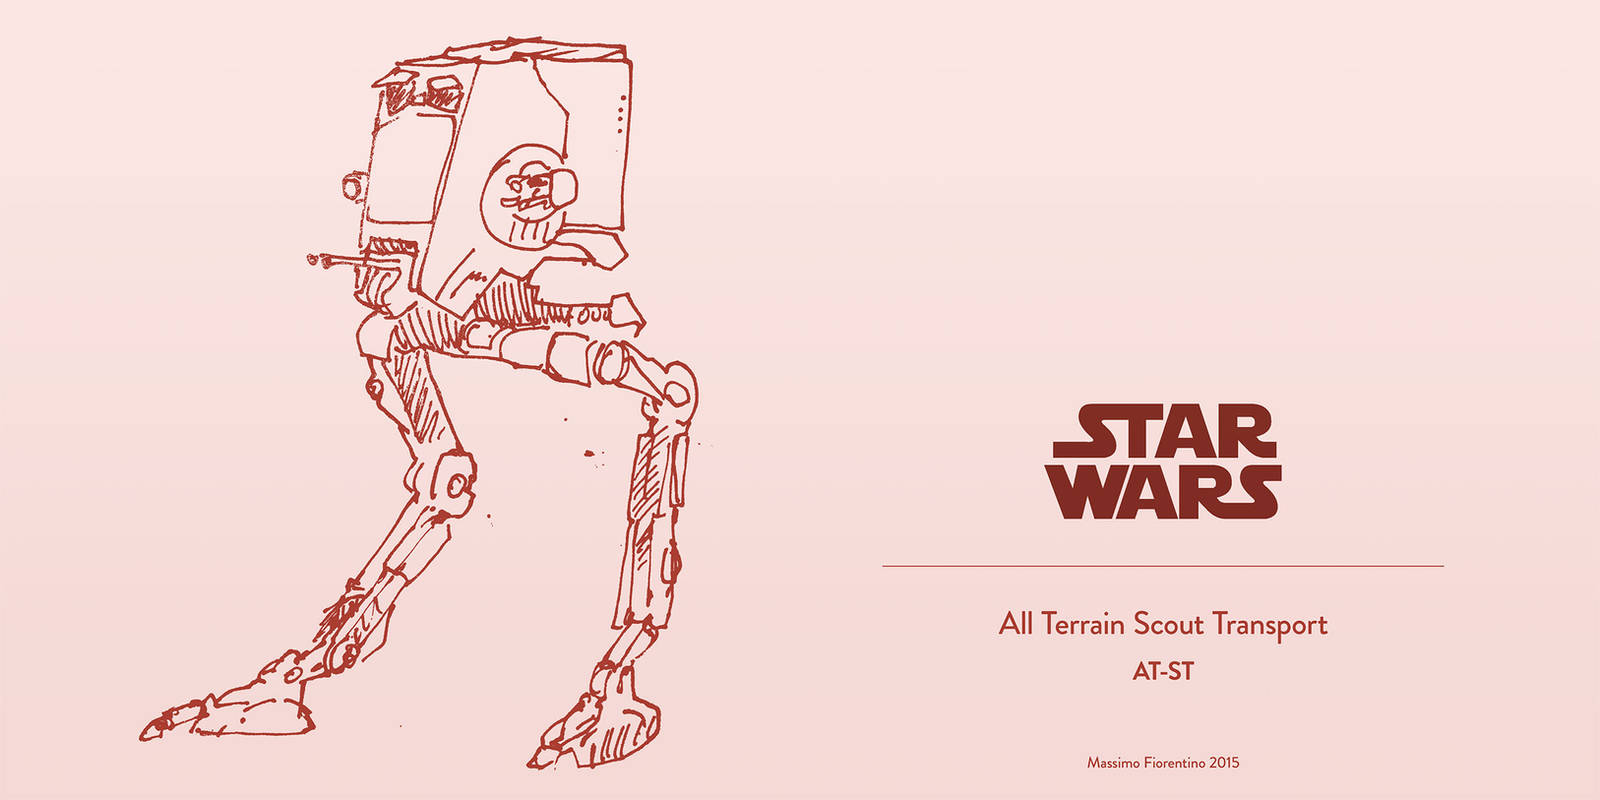 Star Wars All Terrain Scout Transport AT-ST by mfiorentino